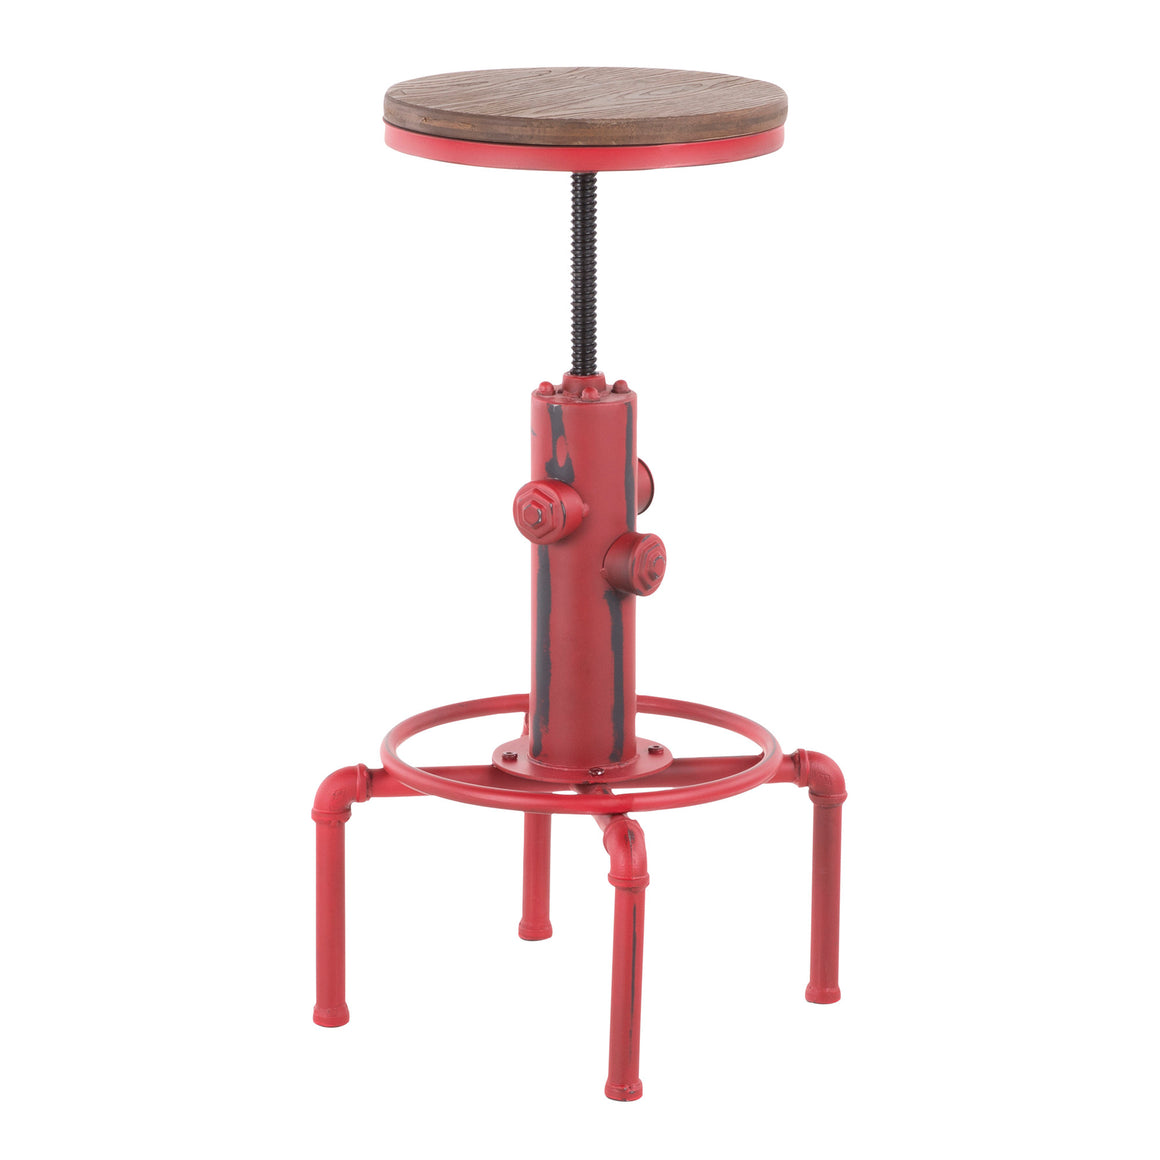 Hydra Industrial Barstool in Vintage Red Metal and Brown Wood-Pressed Grain Bamboo by LumiSource